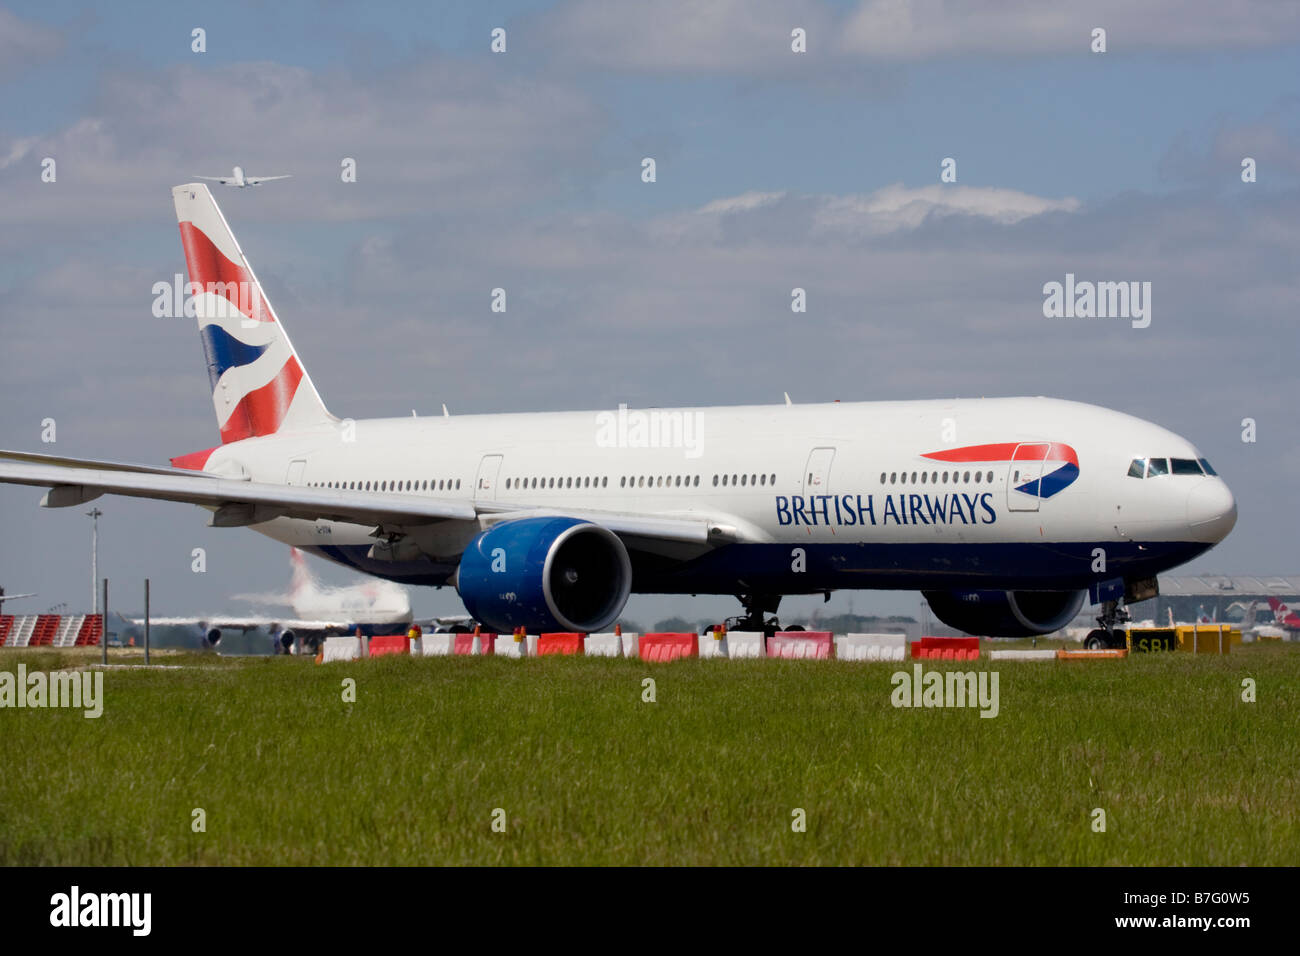 British Airways Boeing 777-236/ER and another commercial airplane taking off in the background at London Heathrow Stock Photo